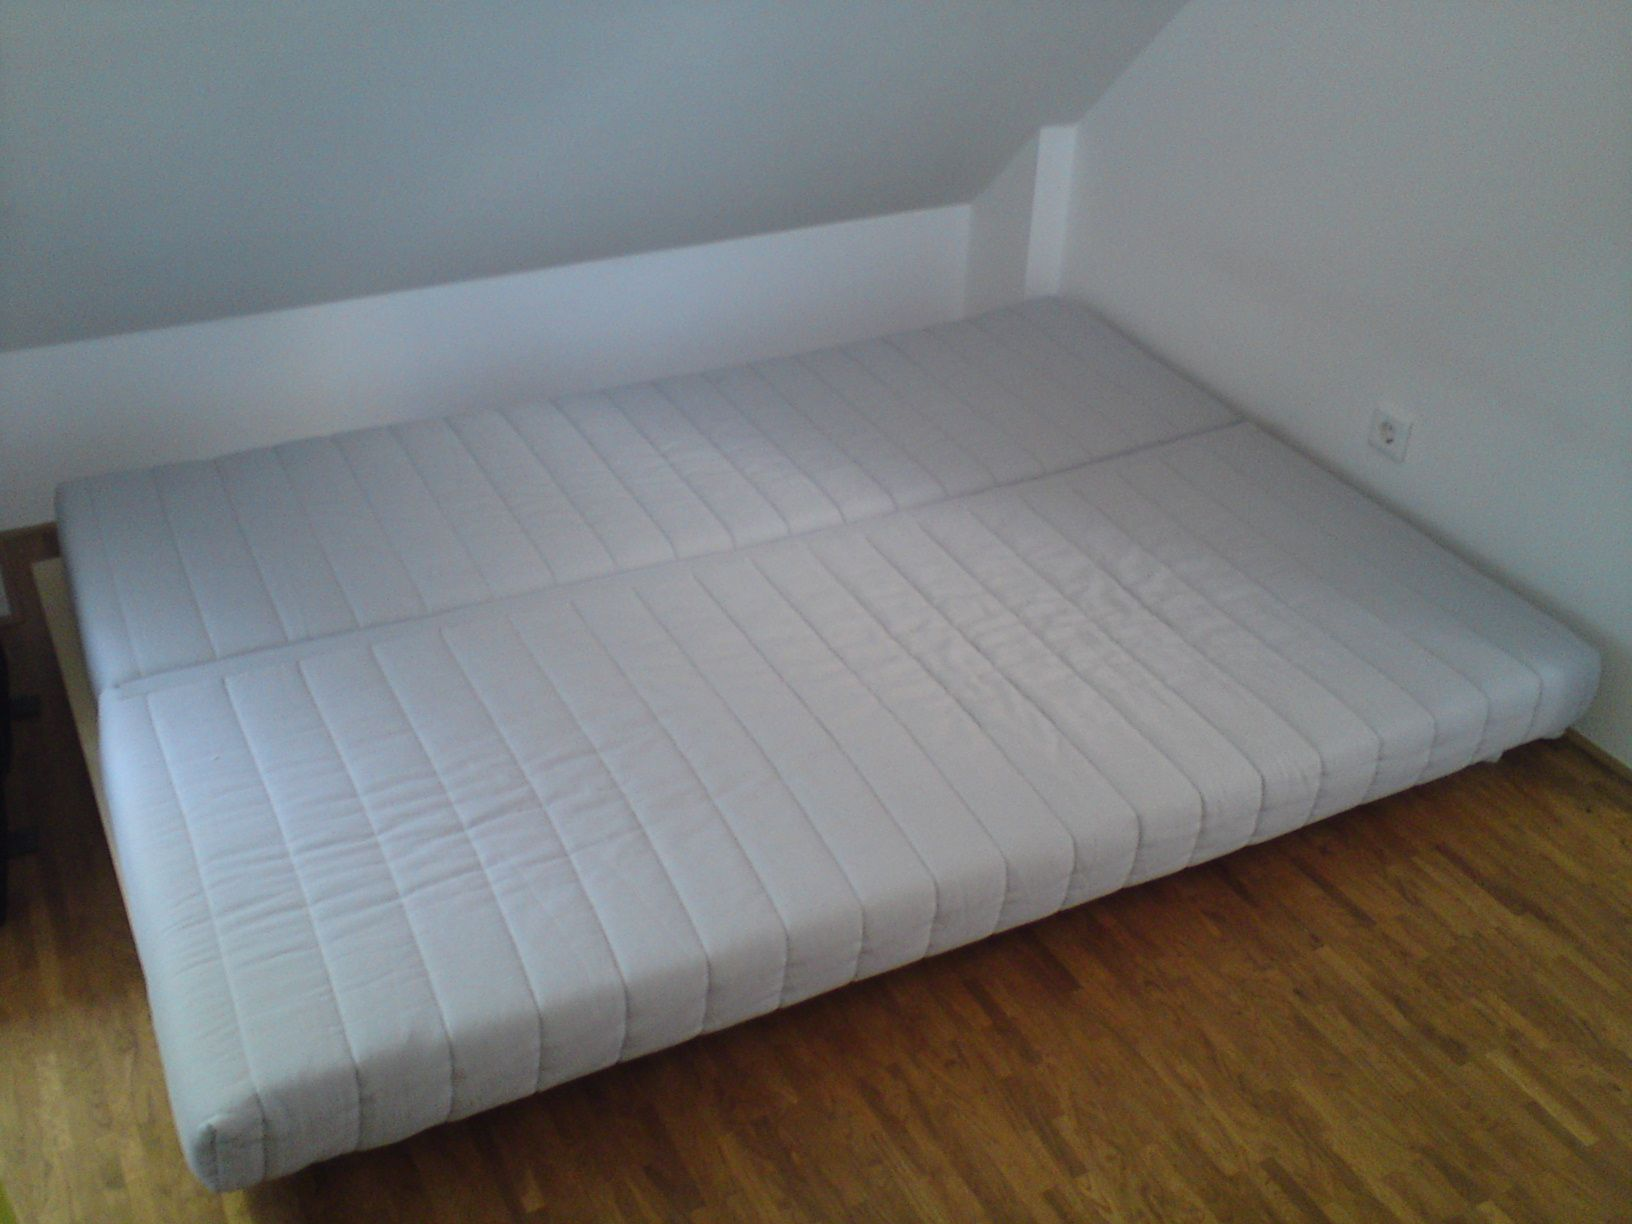 futon for ikea melbourne australia replacement interior mattresses cushion sale mattress cushions